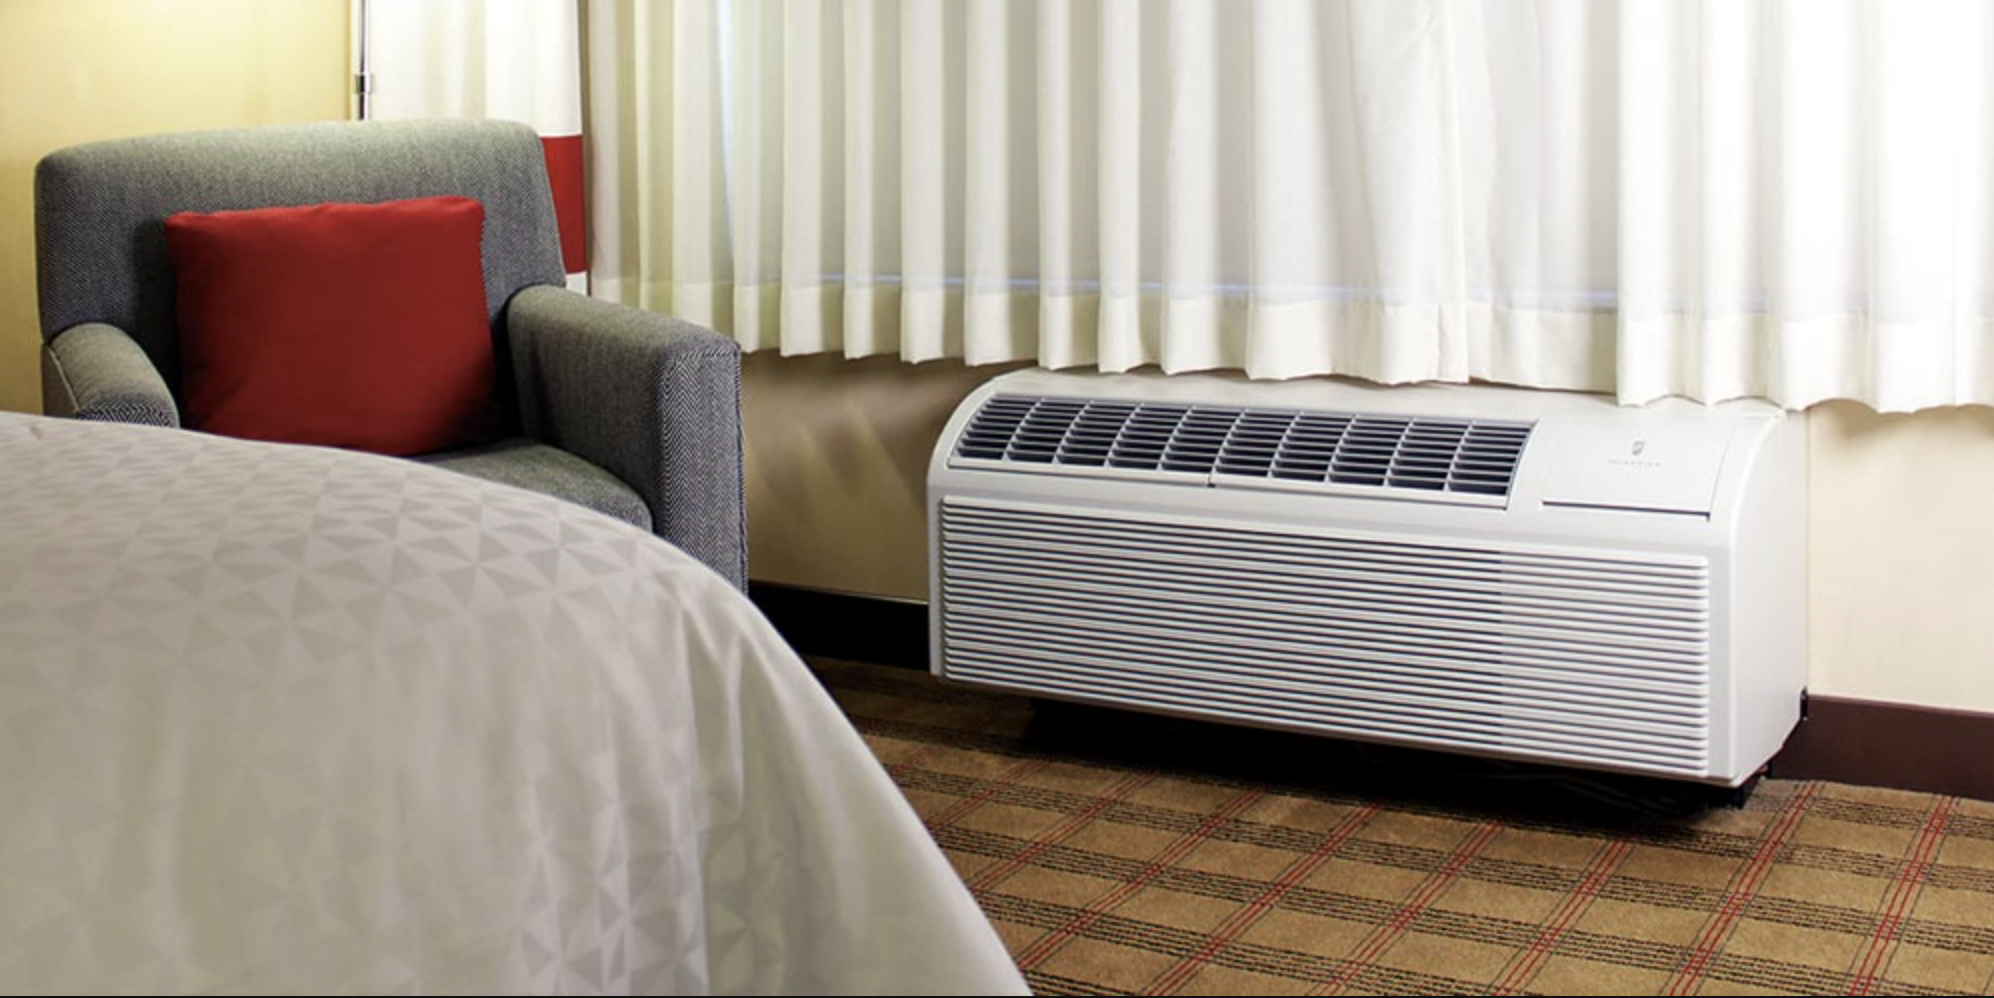 How Does A PTAC Air Conditioner Works